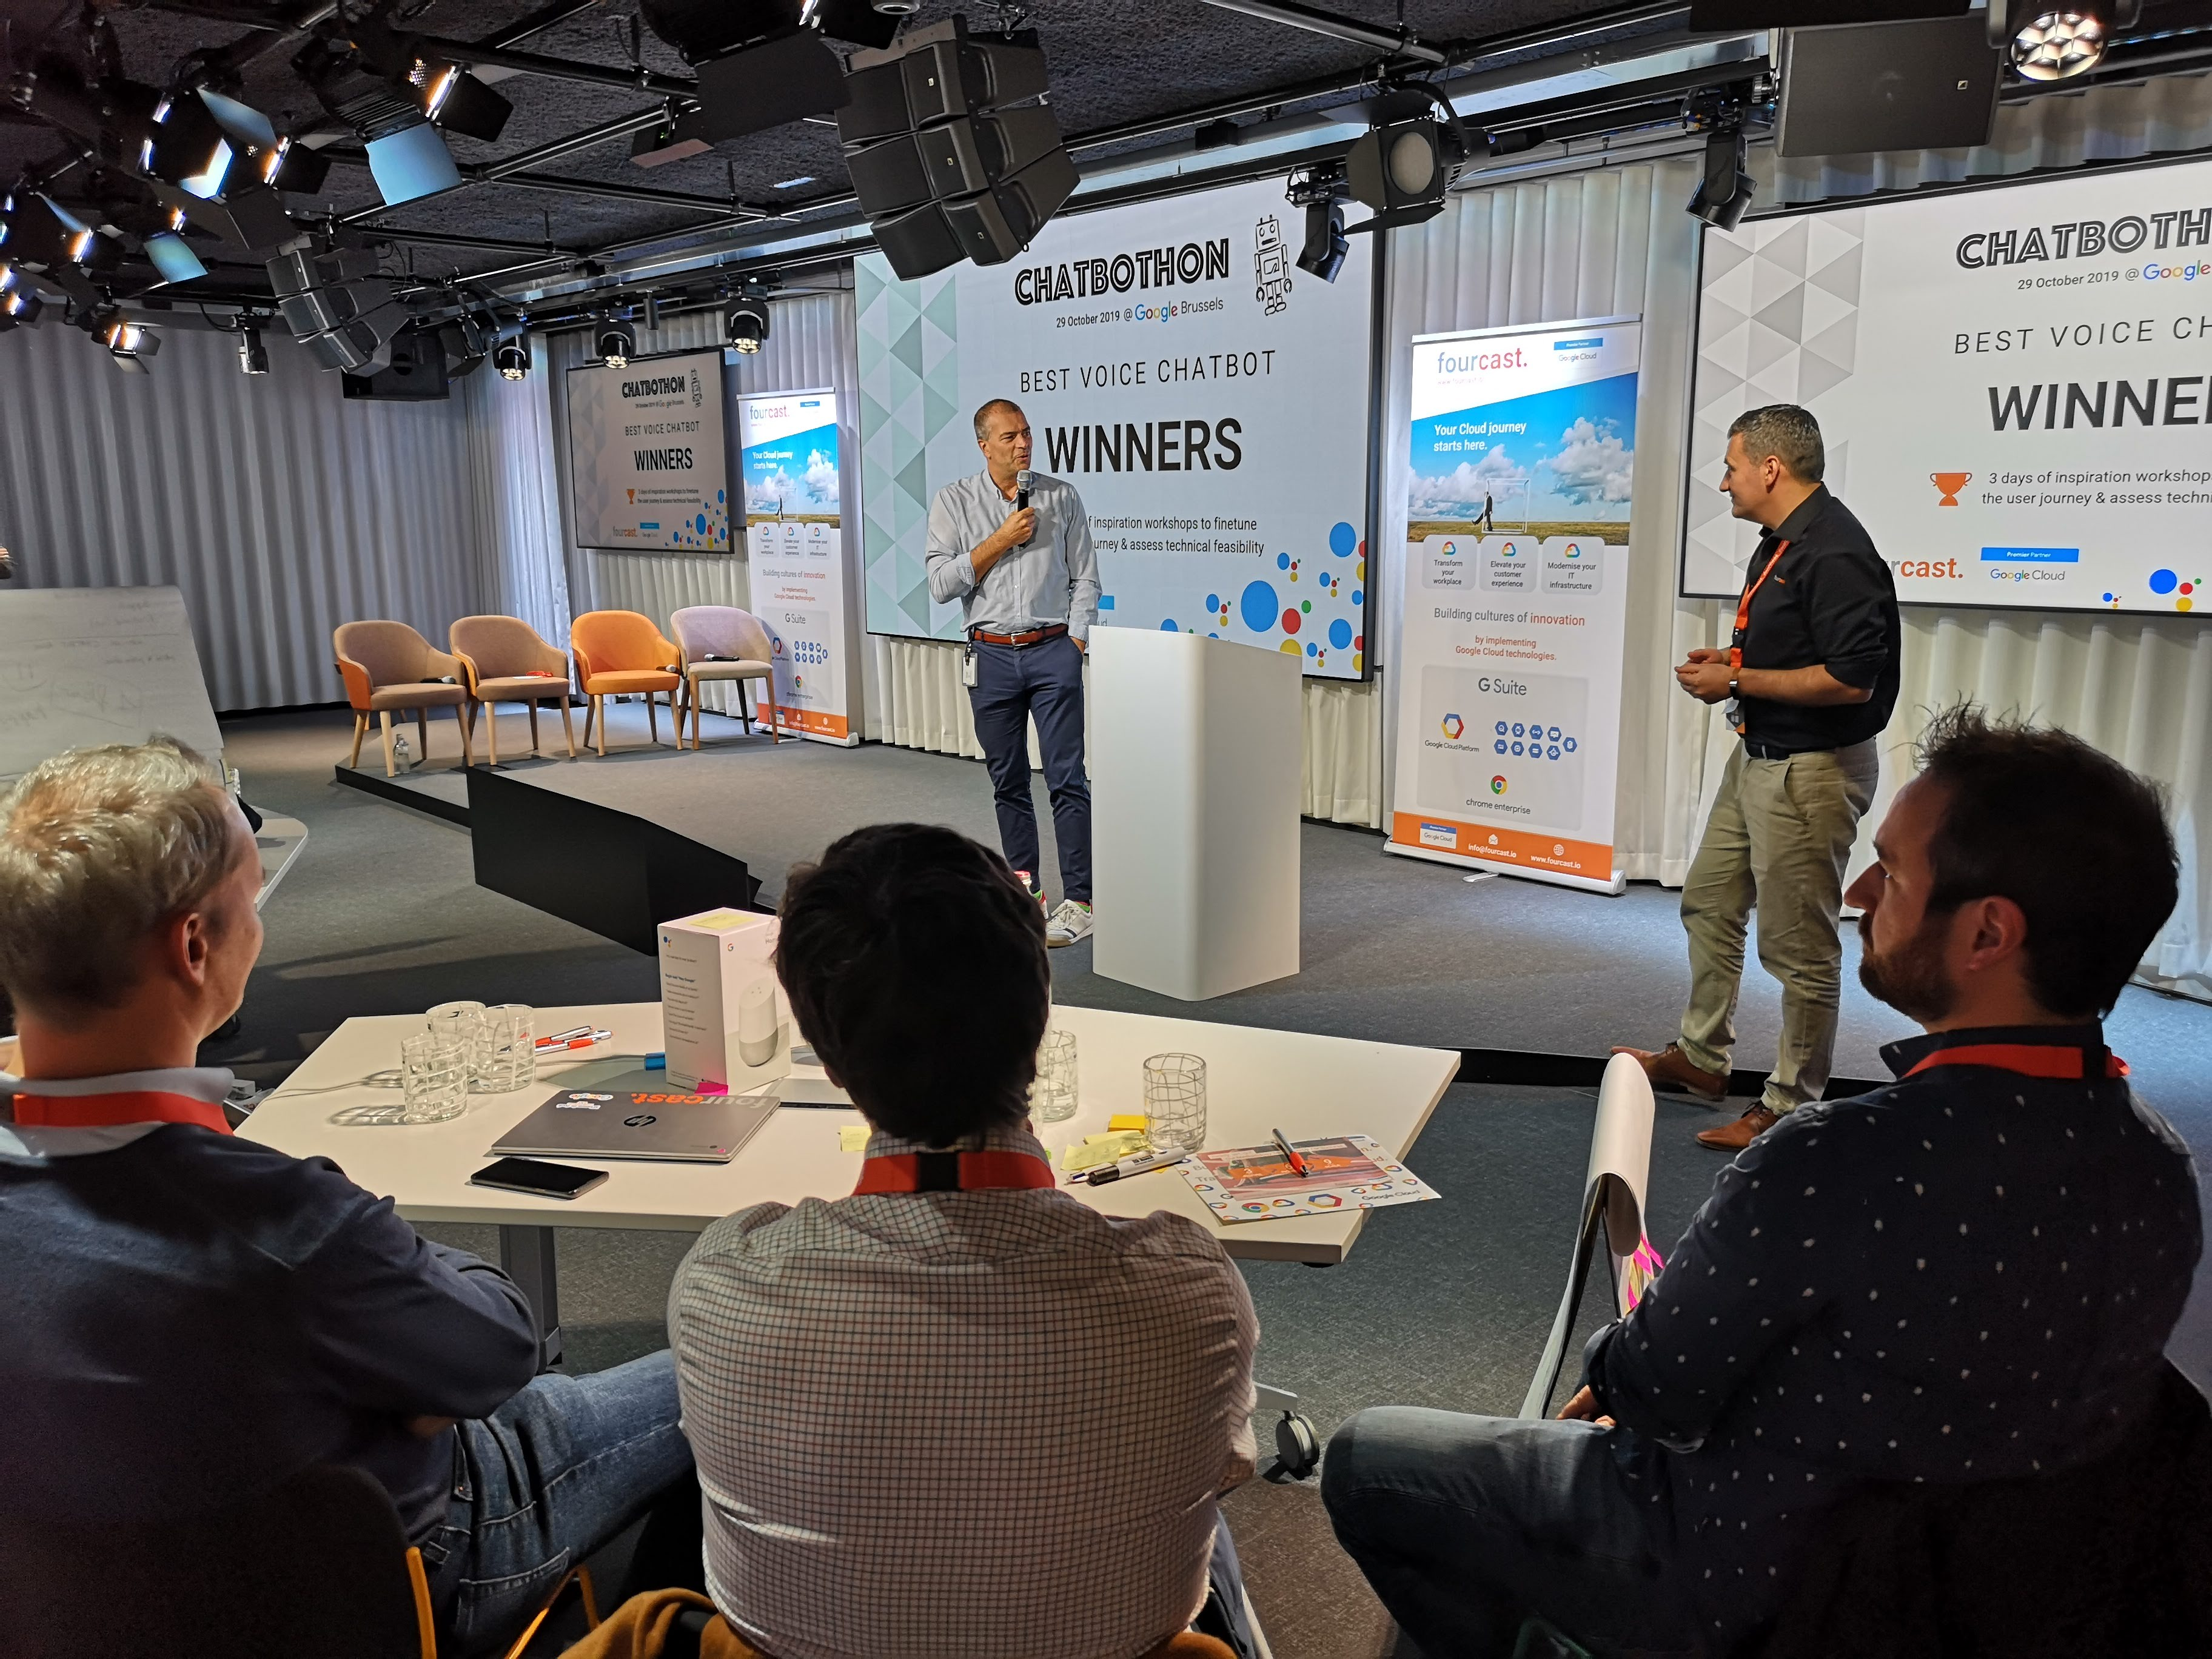 Chatbothon voice chatbots workshop at Google Brussels 2019 Winners' ceremony